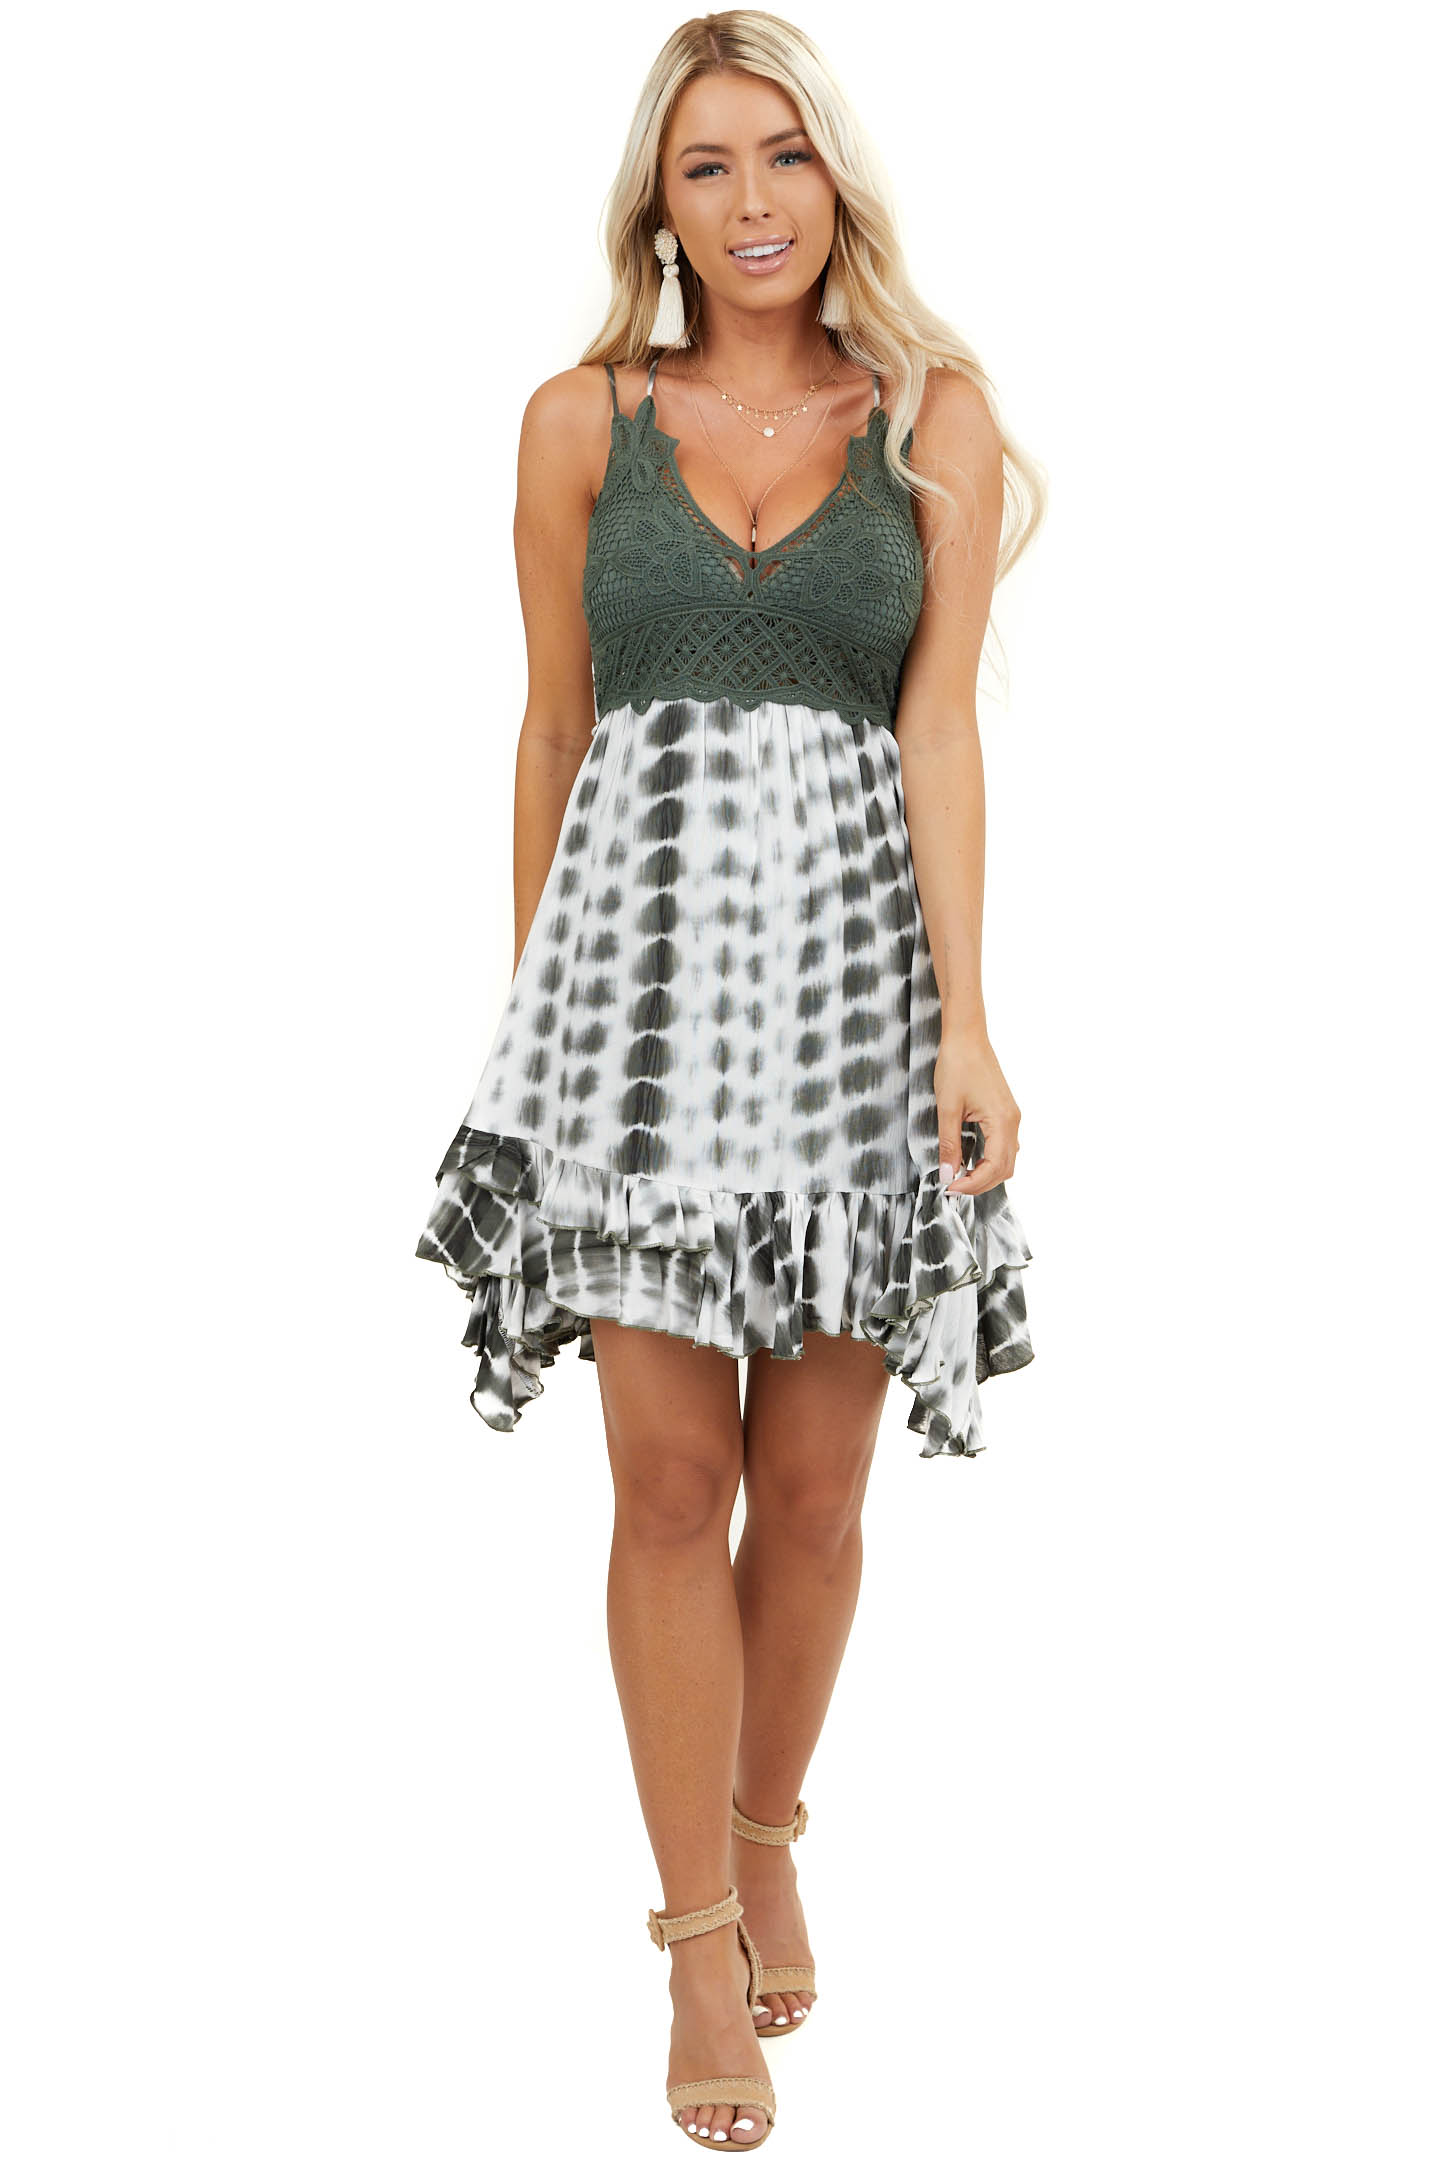 Hunter Green and White Tie Dye Dress with Crochet Lace Bust